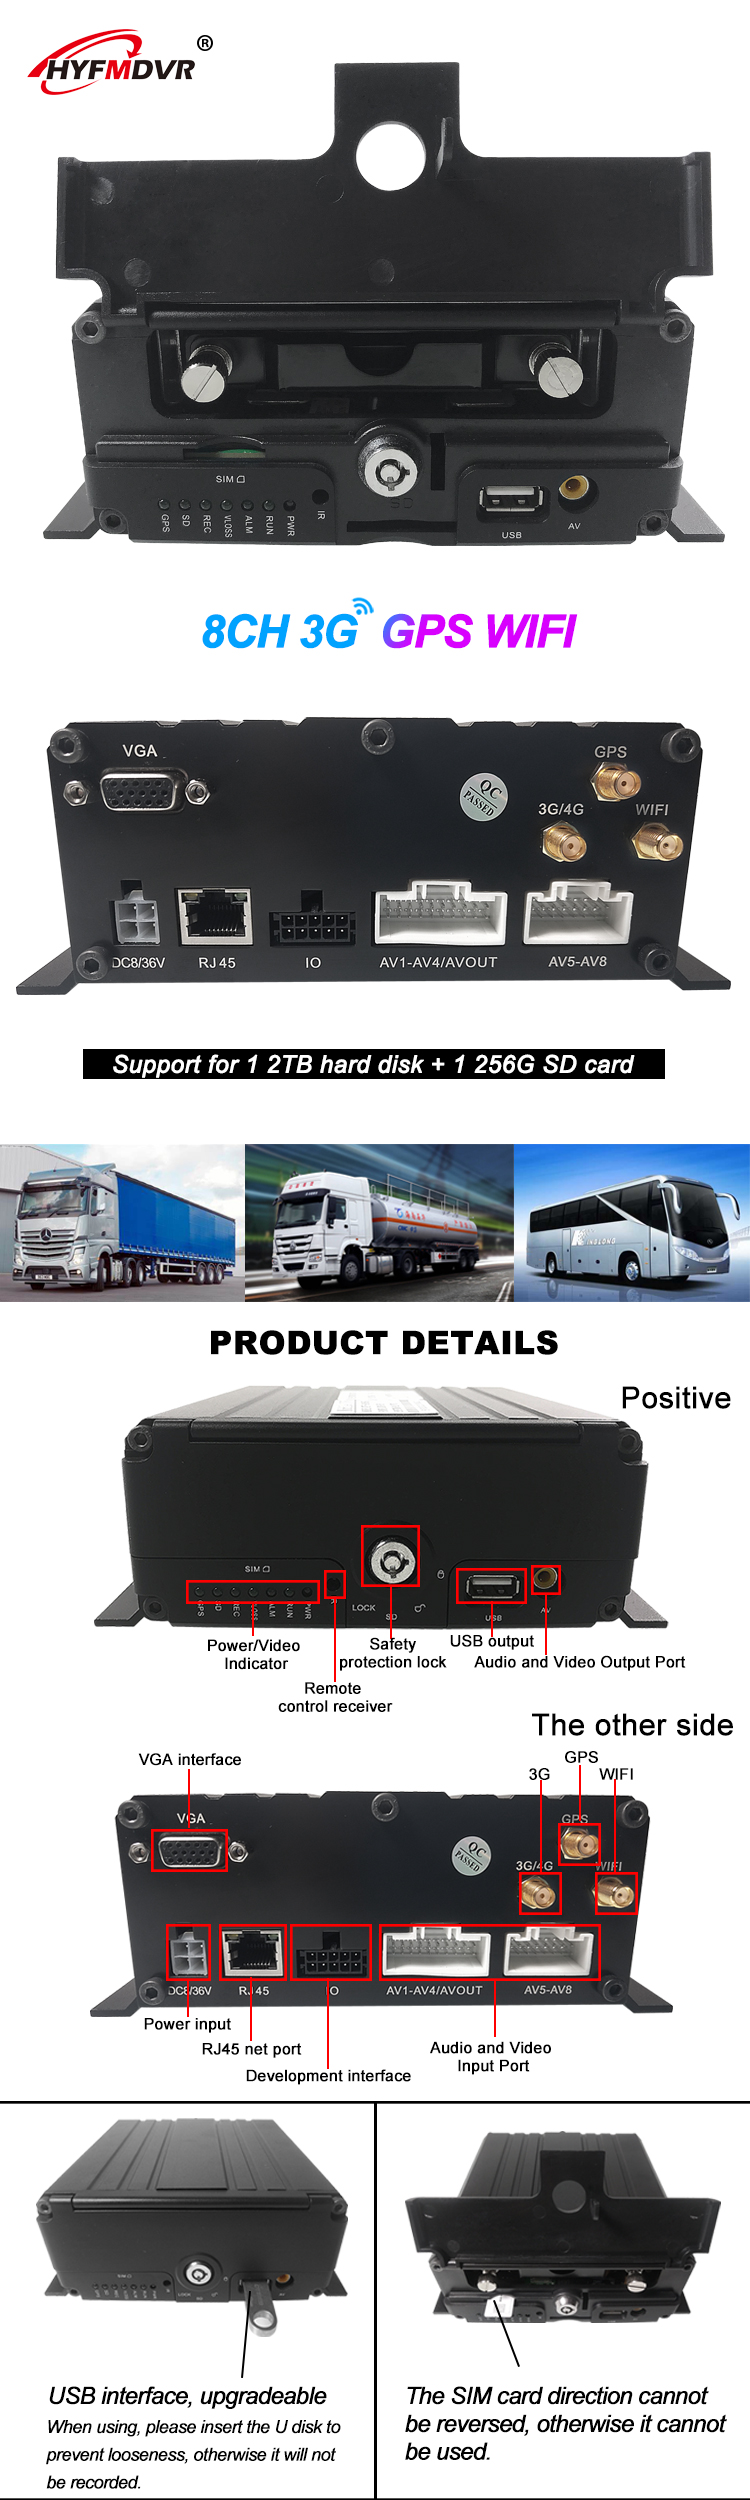 8CH FULL D1 HDD vehicle mobile DVR 8ch HDD/SSD MDVR with GPS 3g wifi